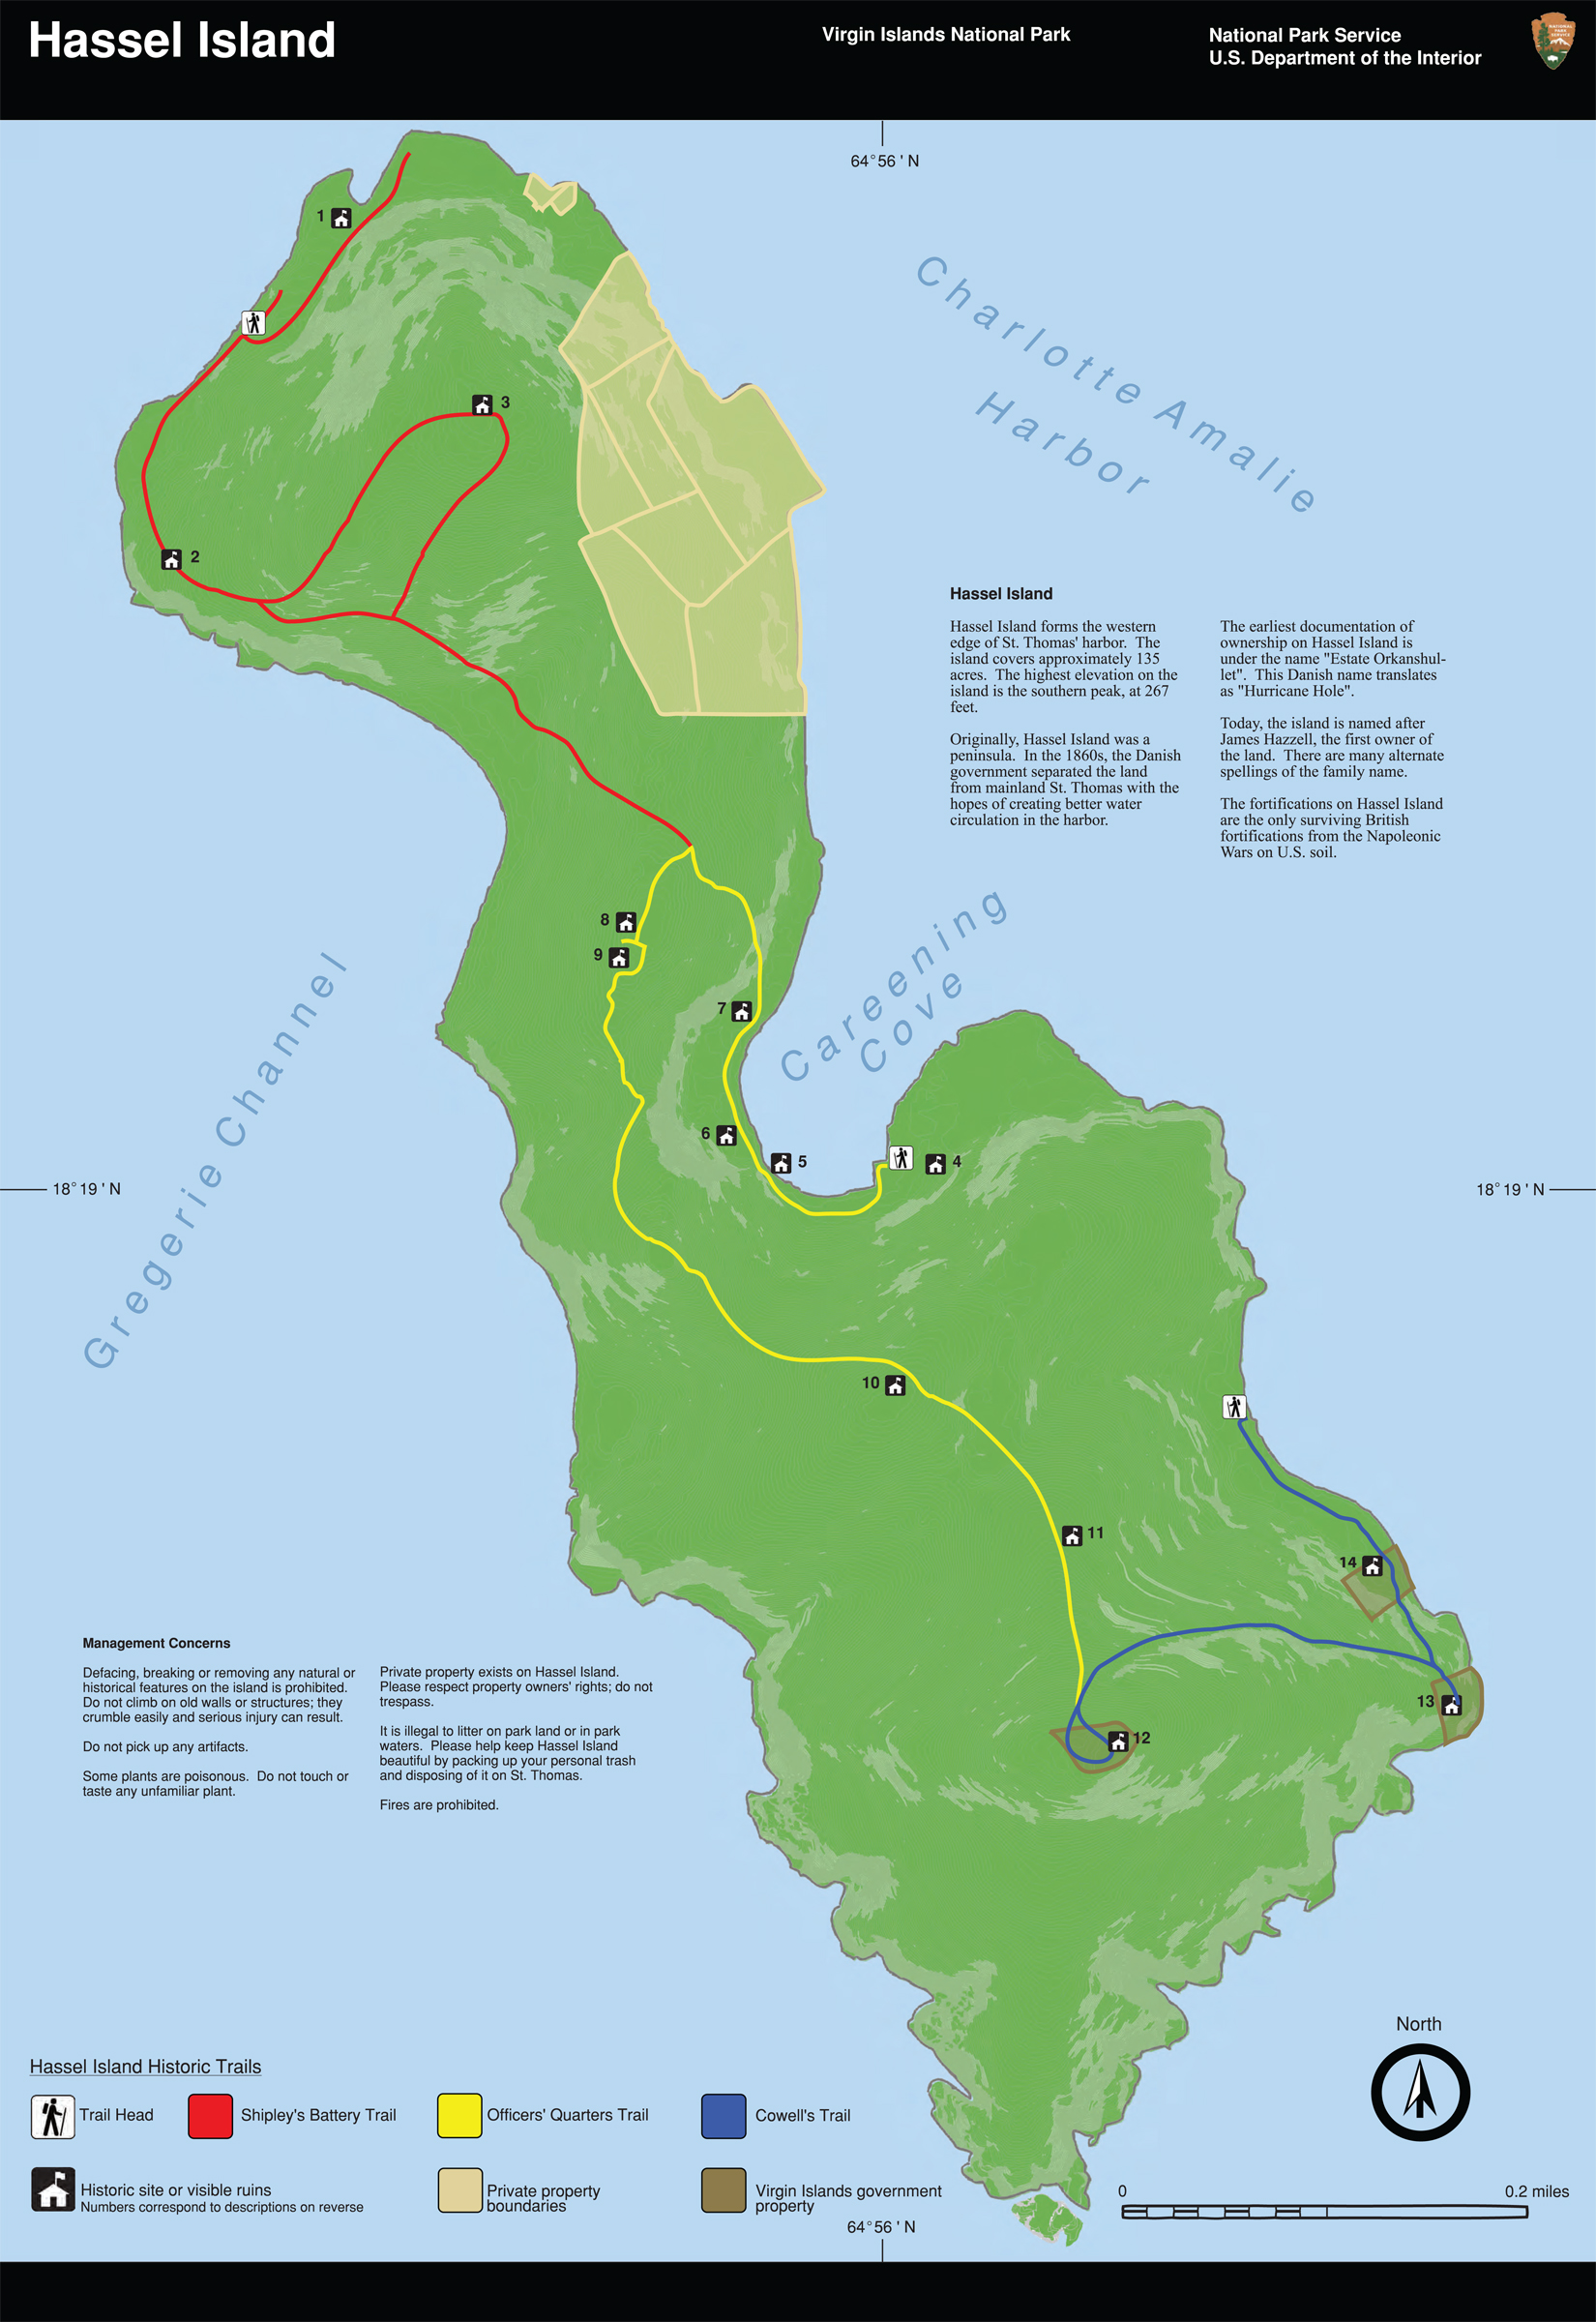 Study the Trail Map